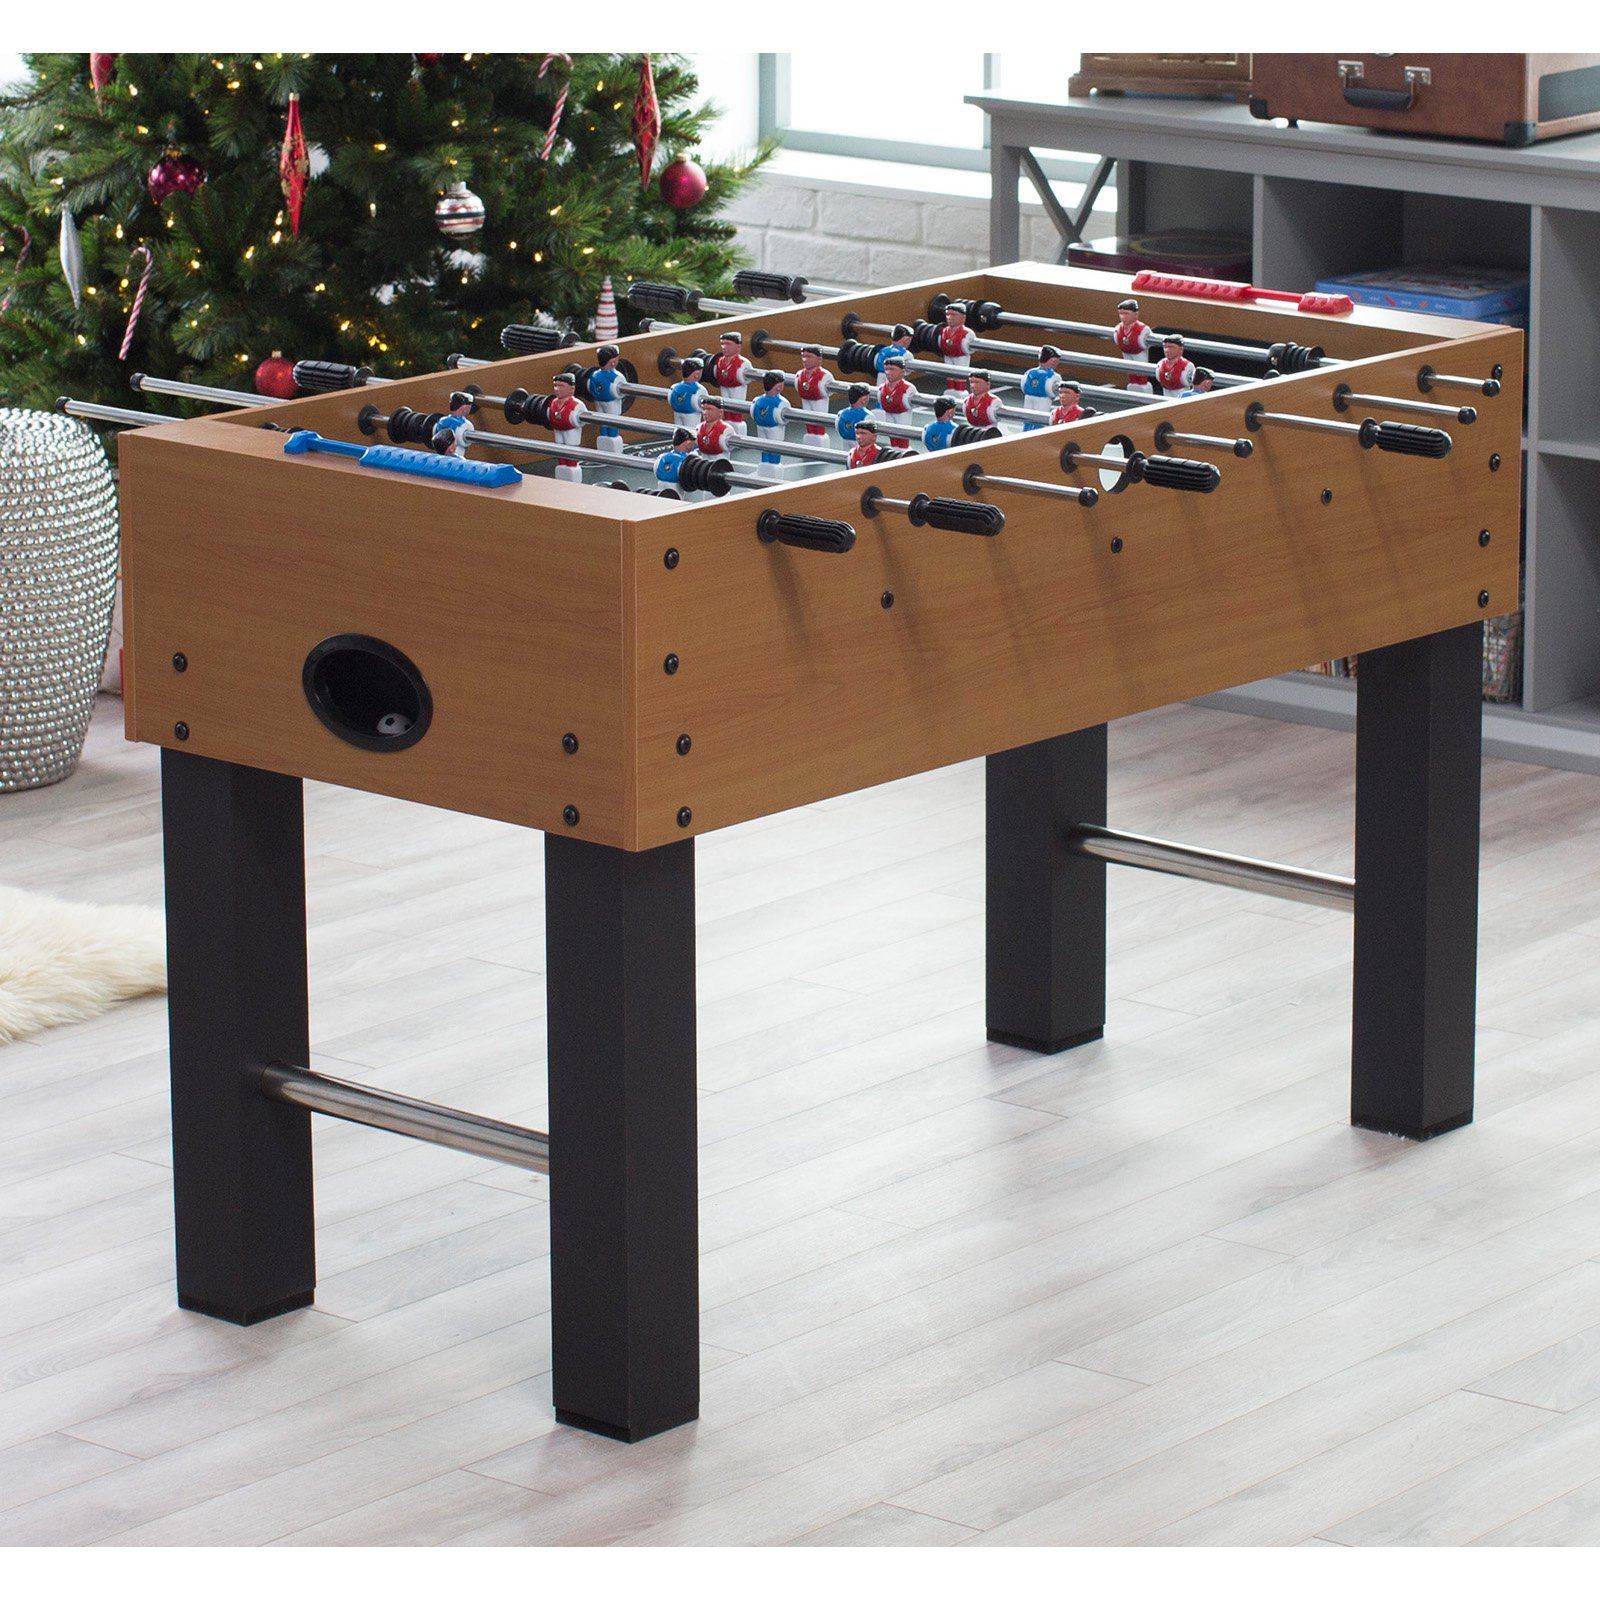 DMI Remo 52 in. Foosball Table by Escalade Sports